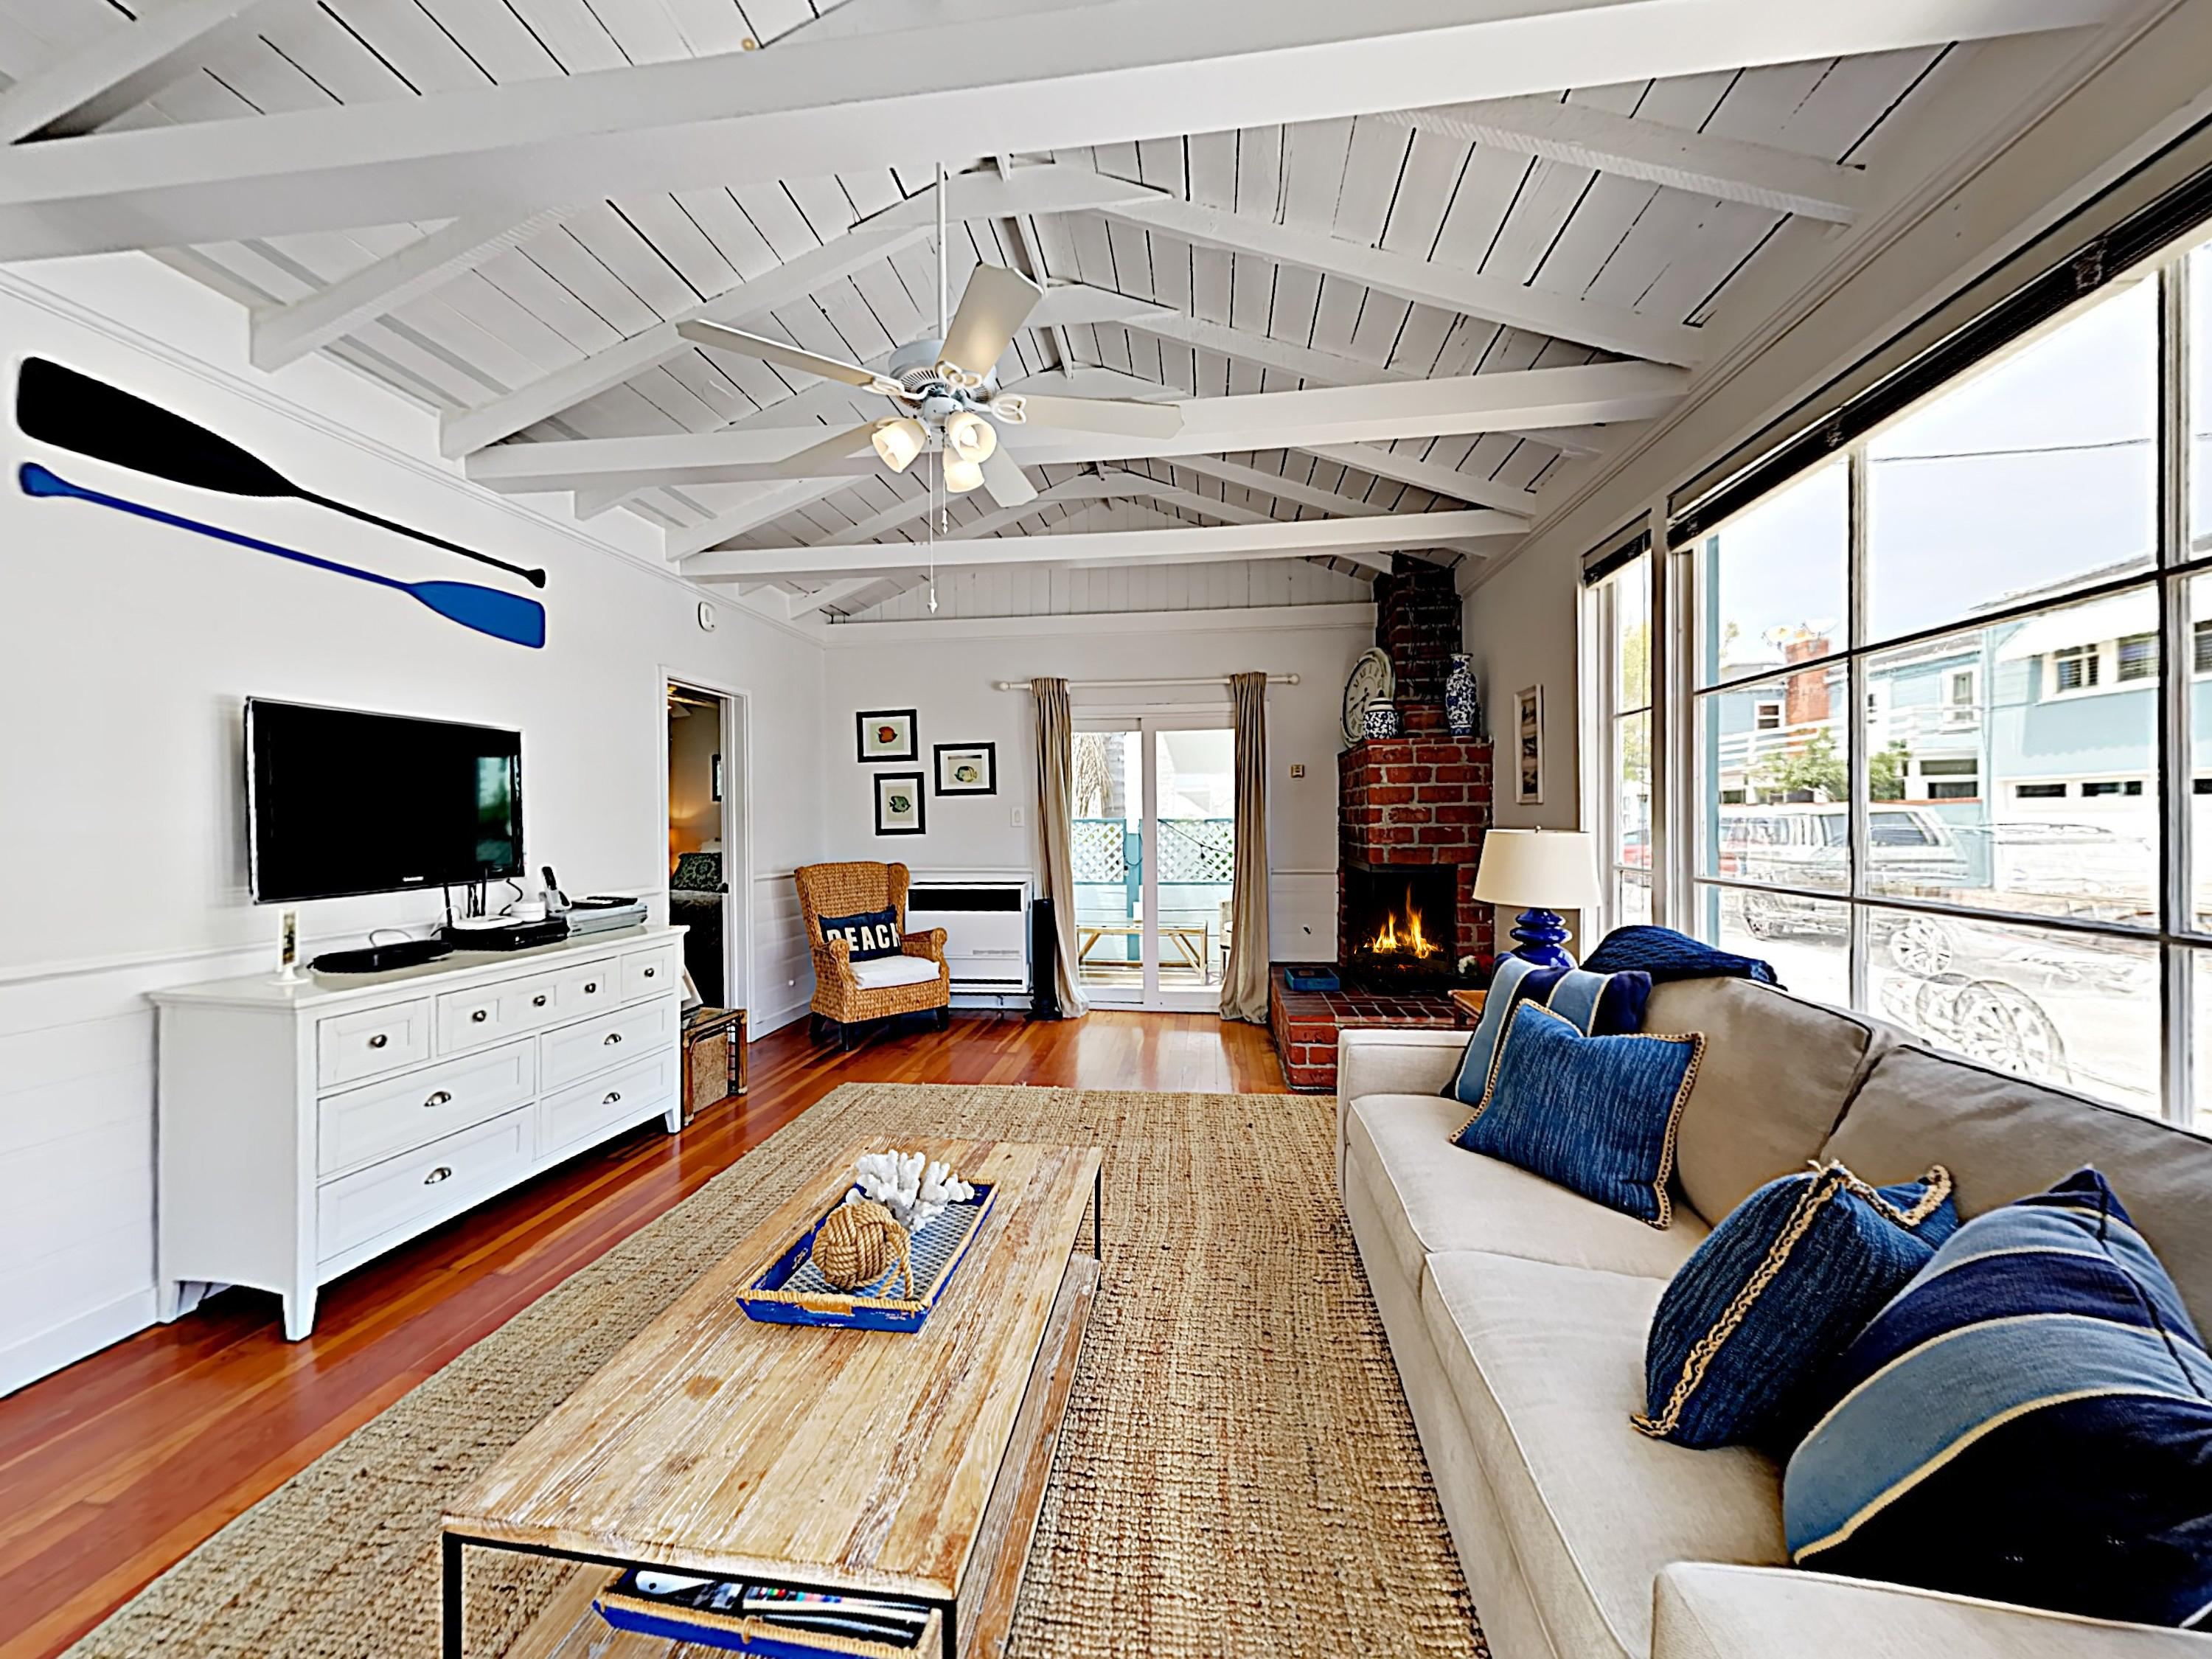 Welcome to Newport Beach! This home is professionally managed by TurnKey Vacation Rentals.